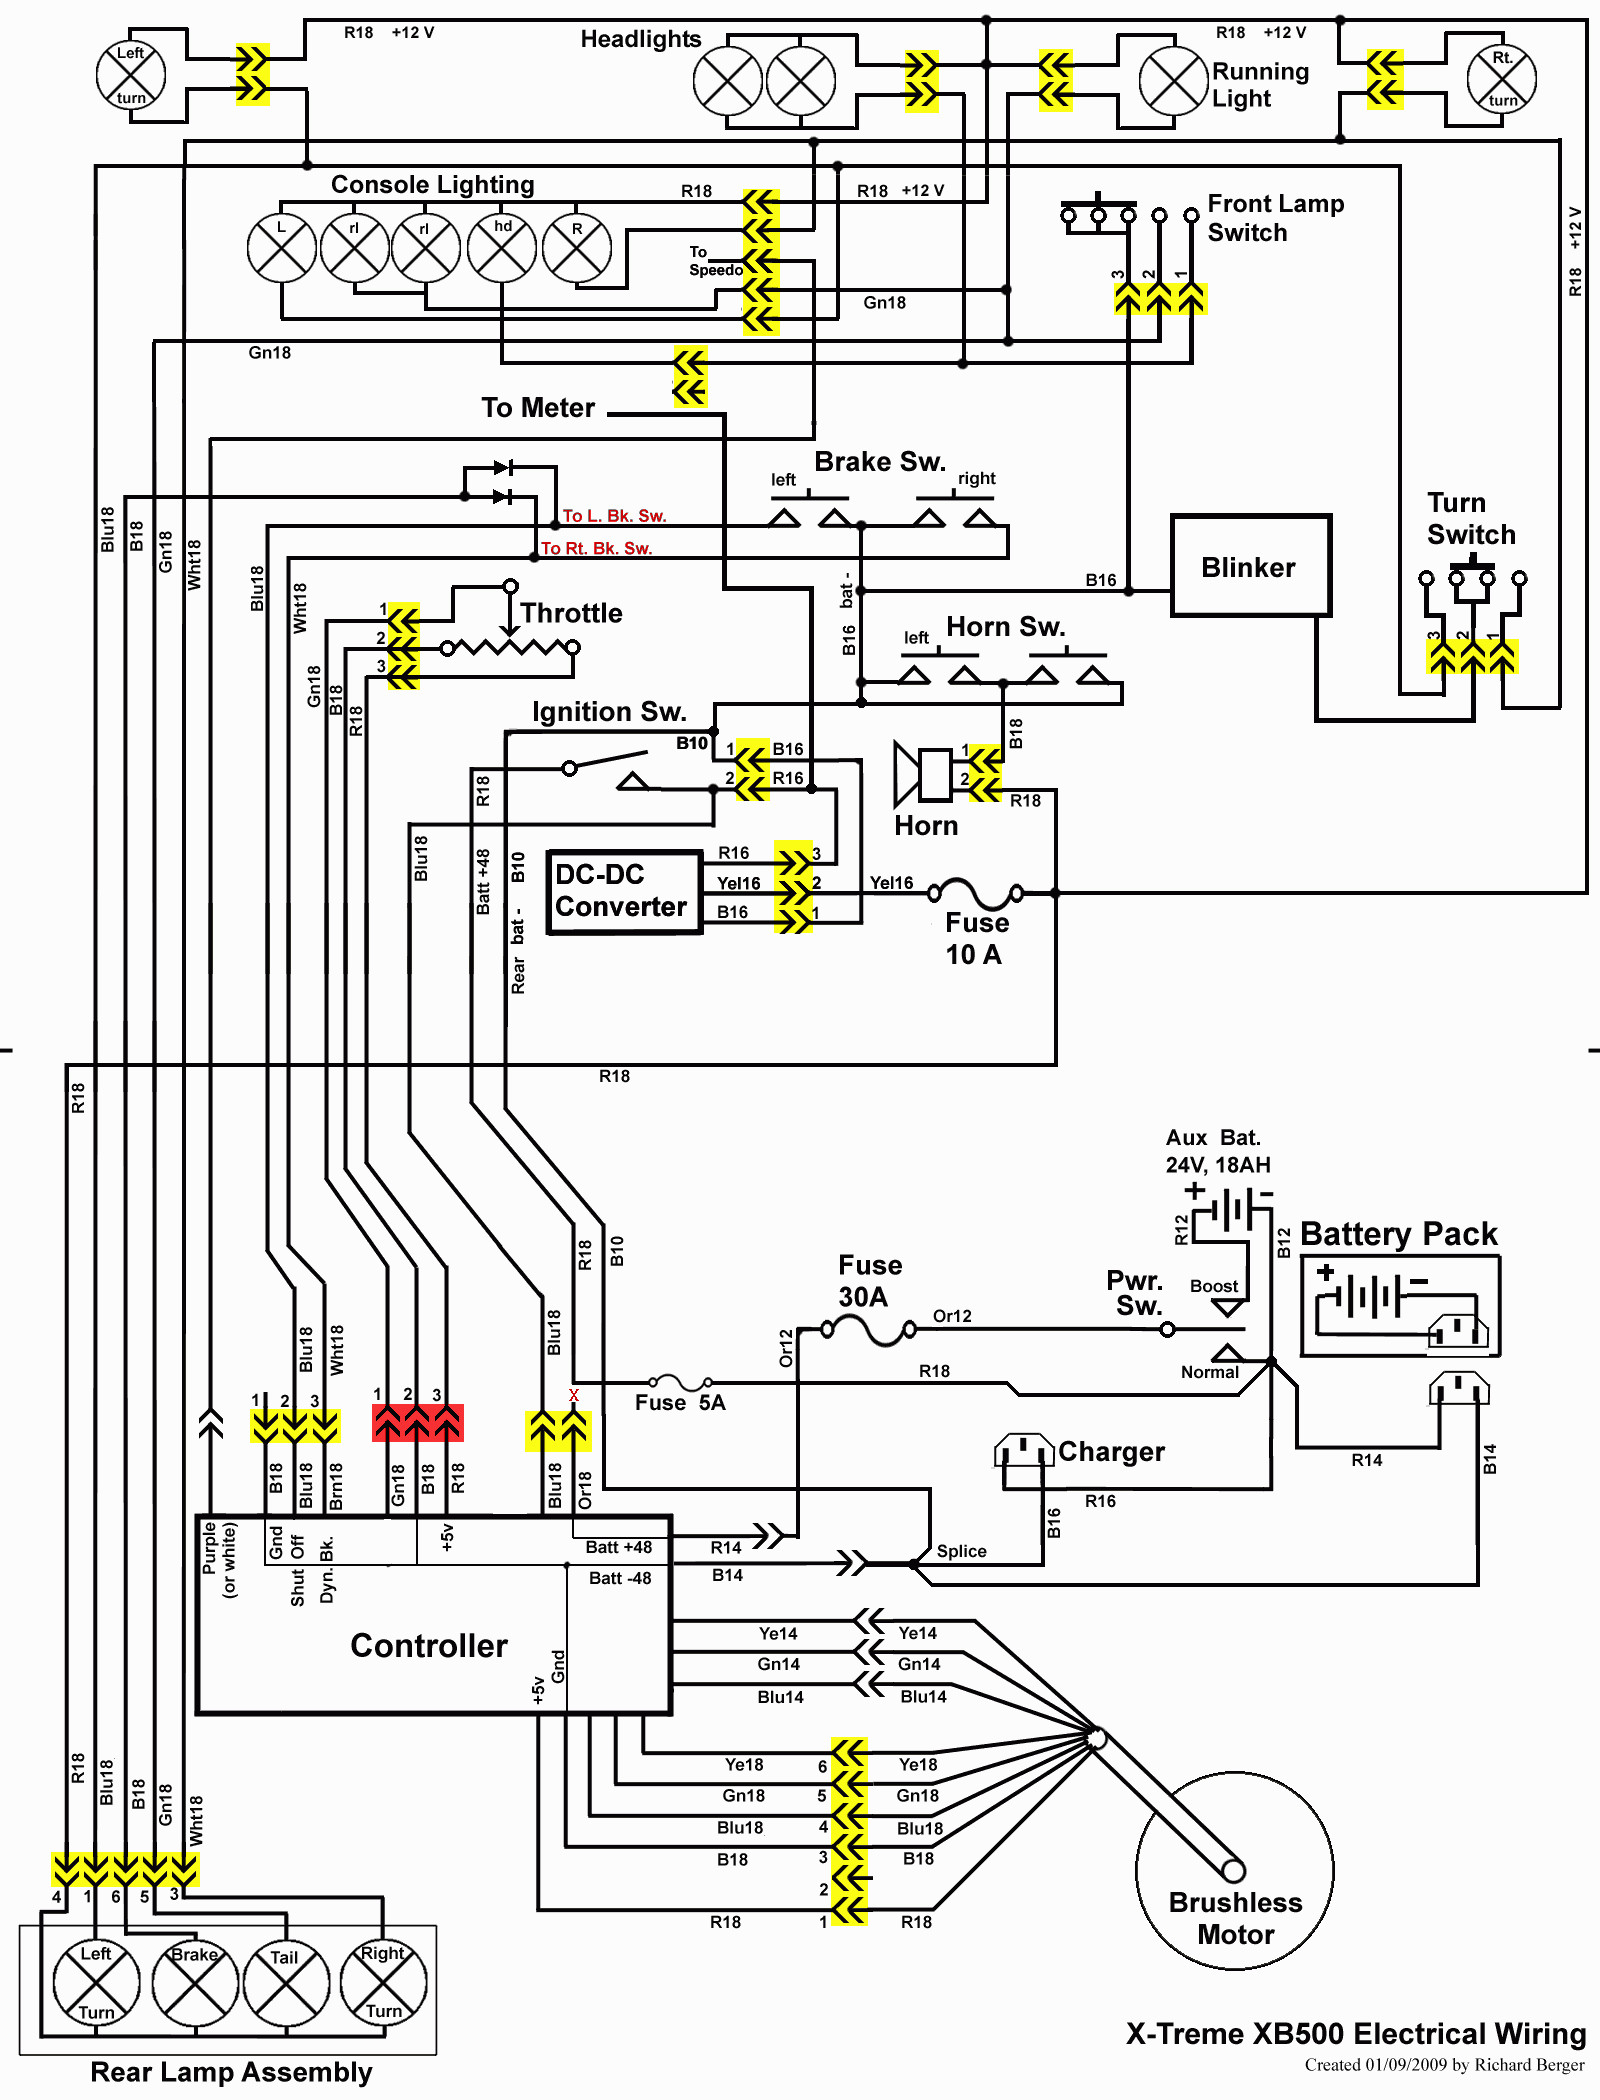 Xbox 360 Controller Wire Diagram